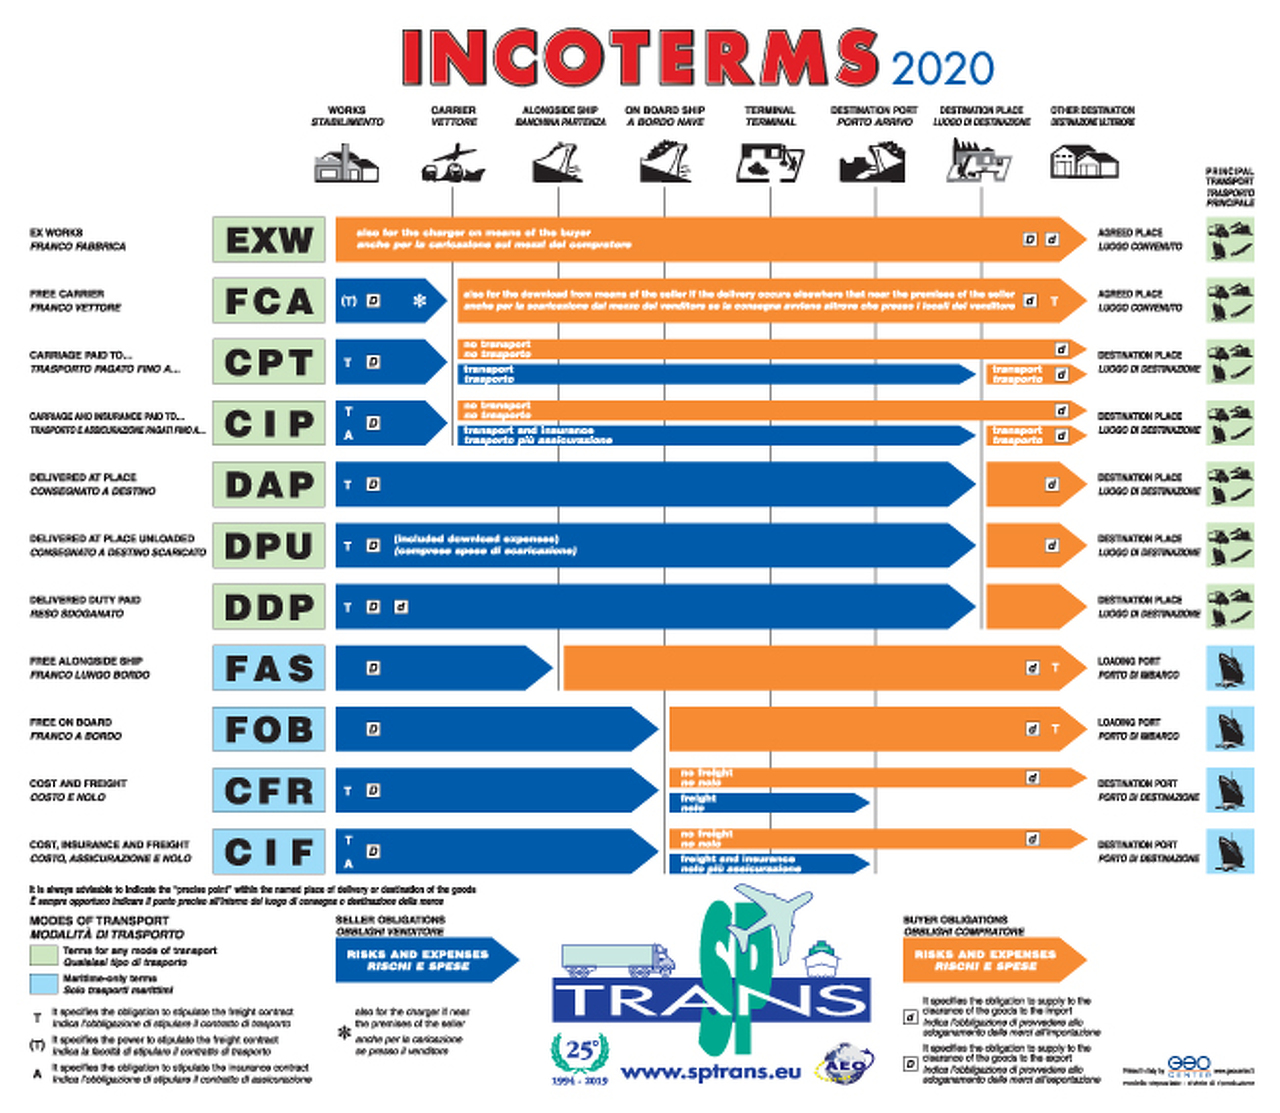 Mouse pad Incoterms 2020